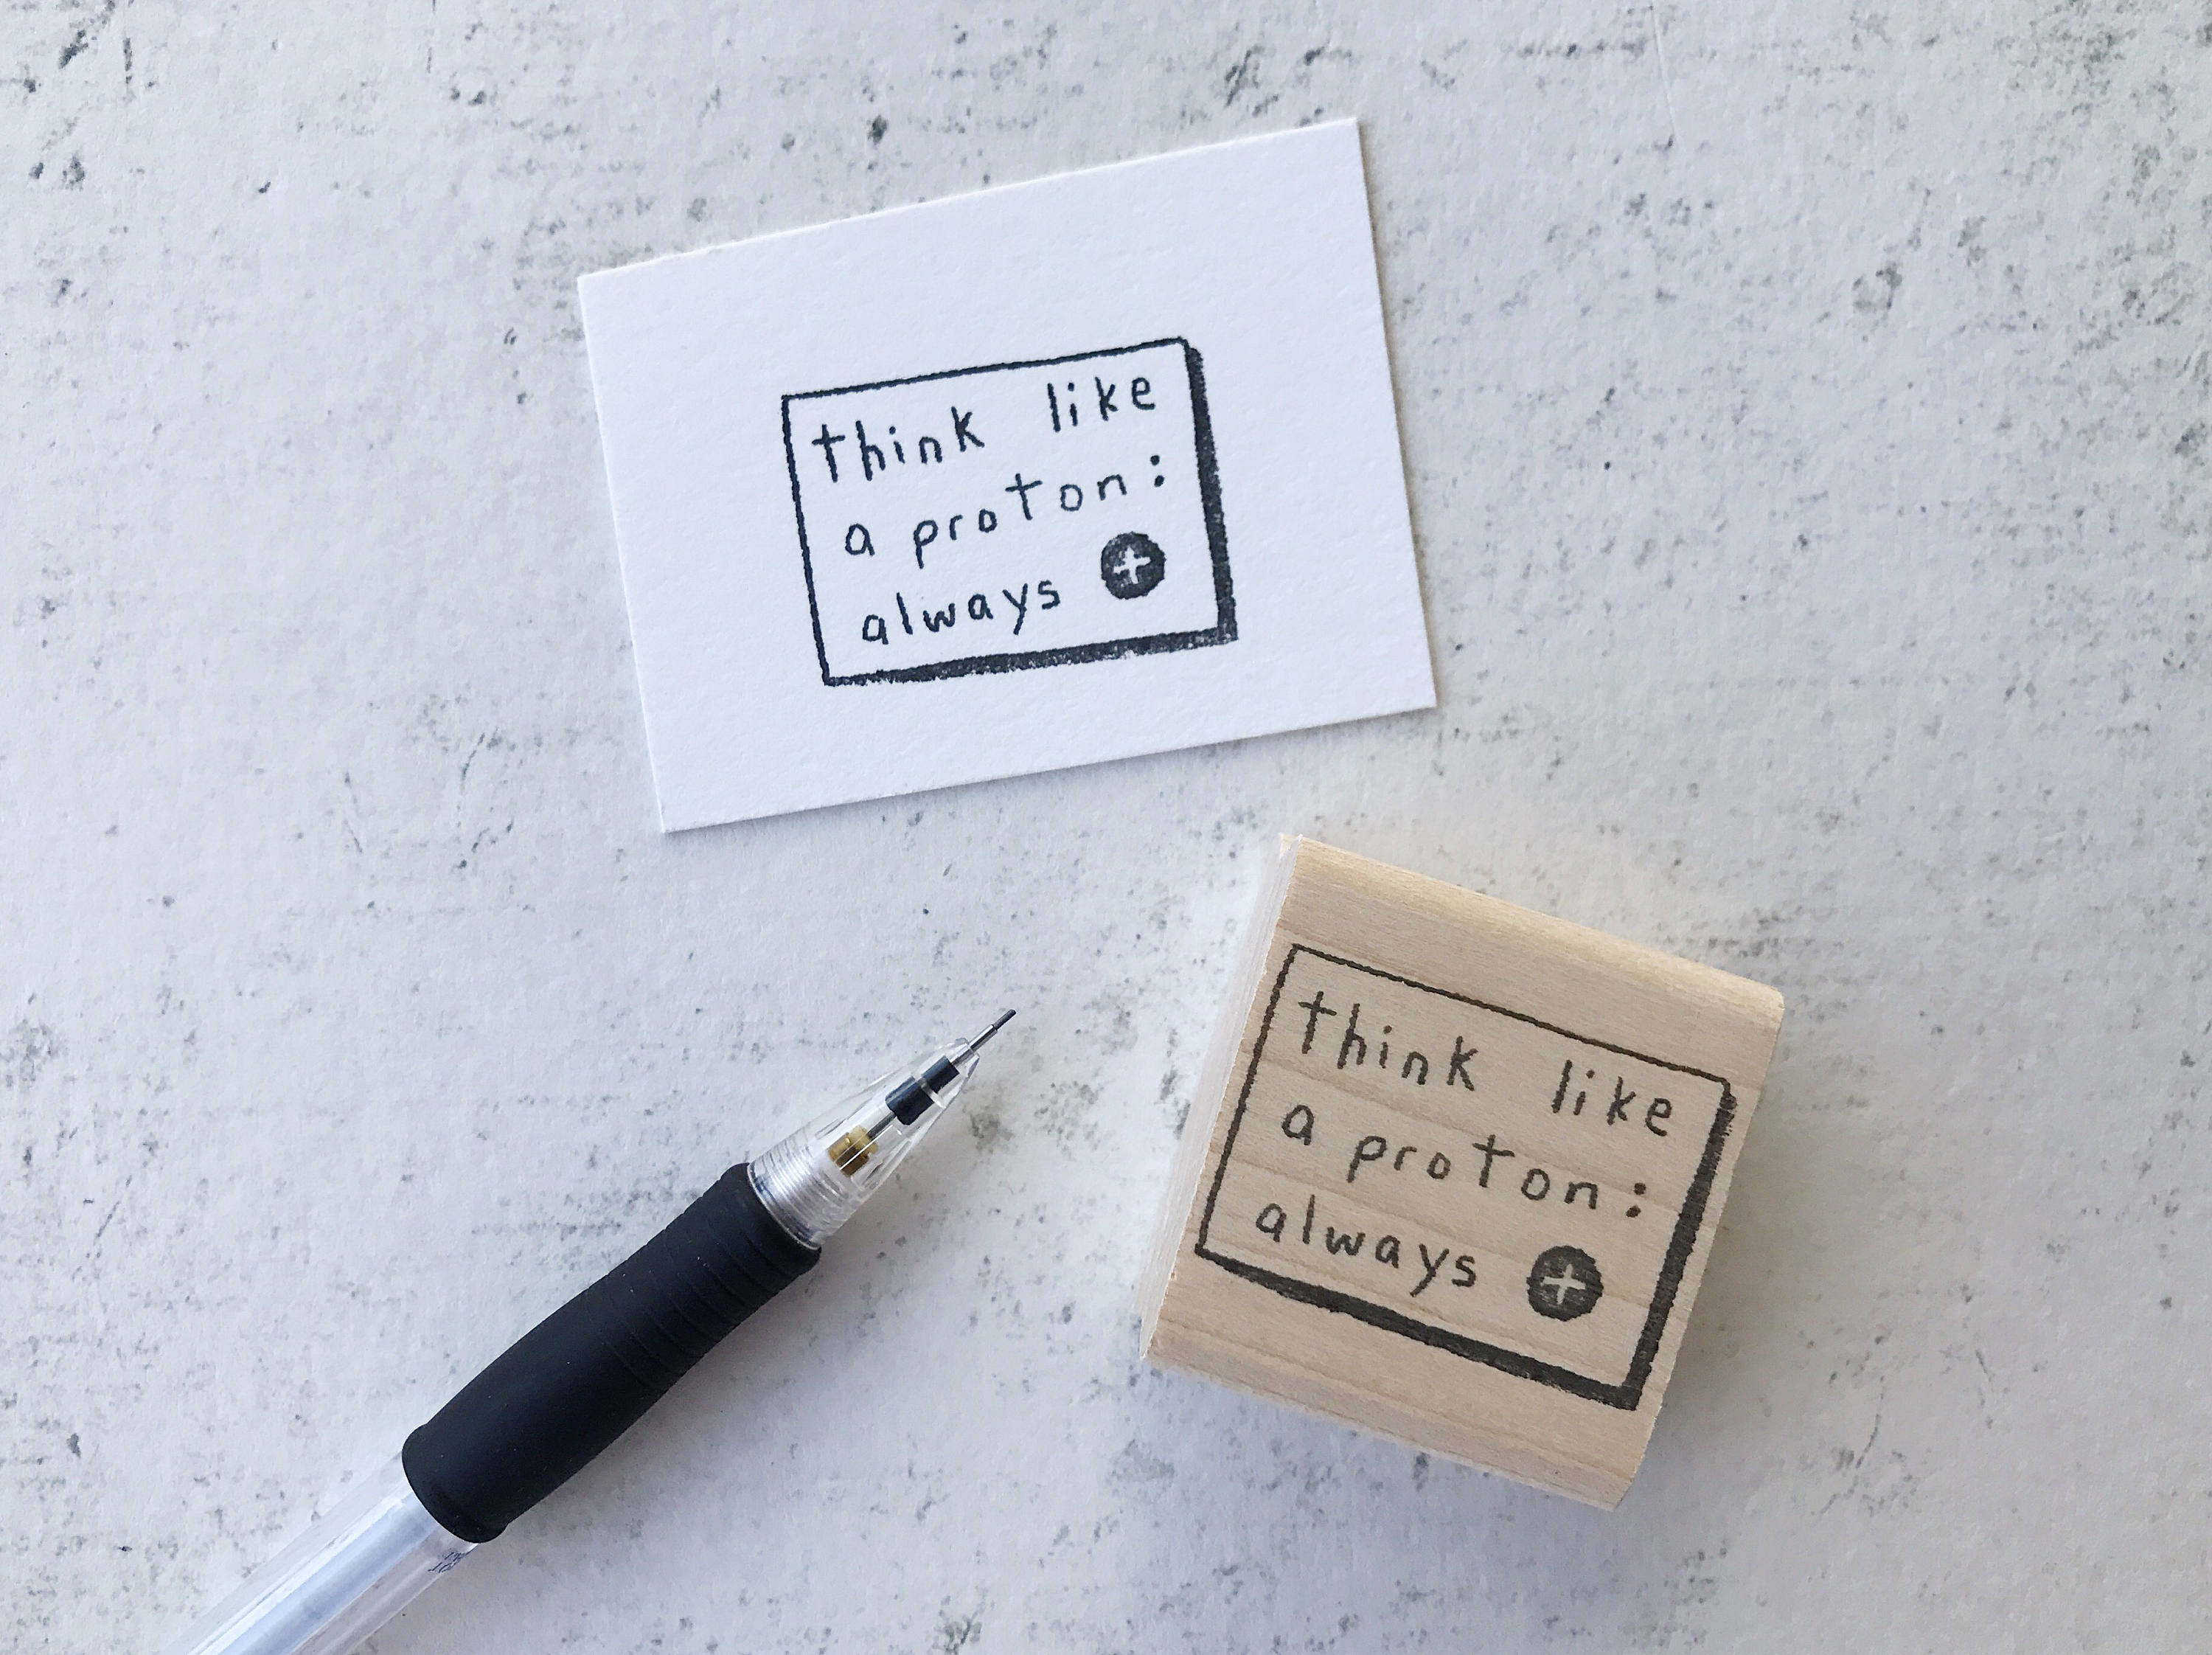 The Proton Stamp - Inspirational Science Teacher's Grading Stamp - Geeky Physics and Chemistry Pen Pal Rubber Stamp Gift